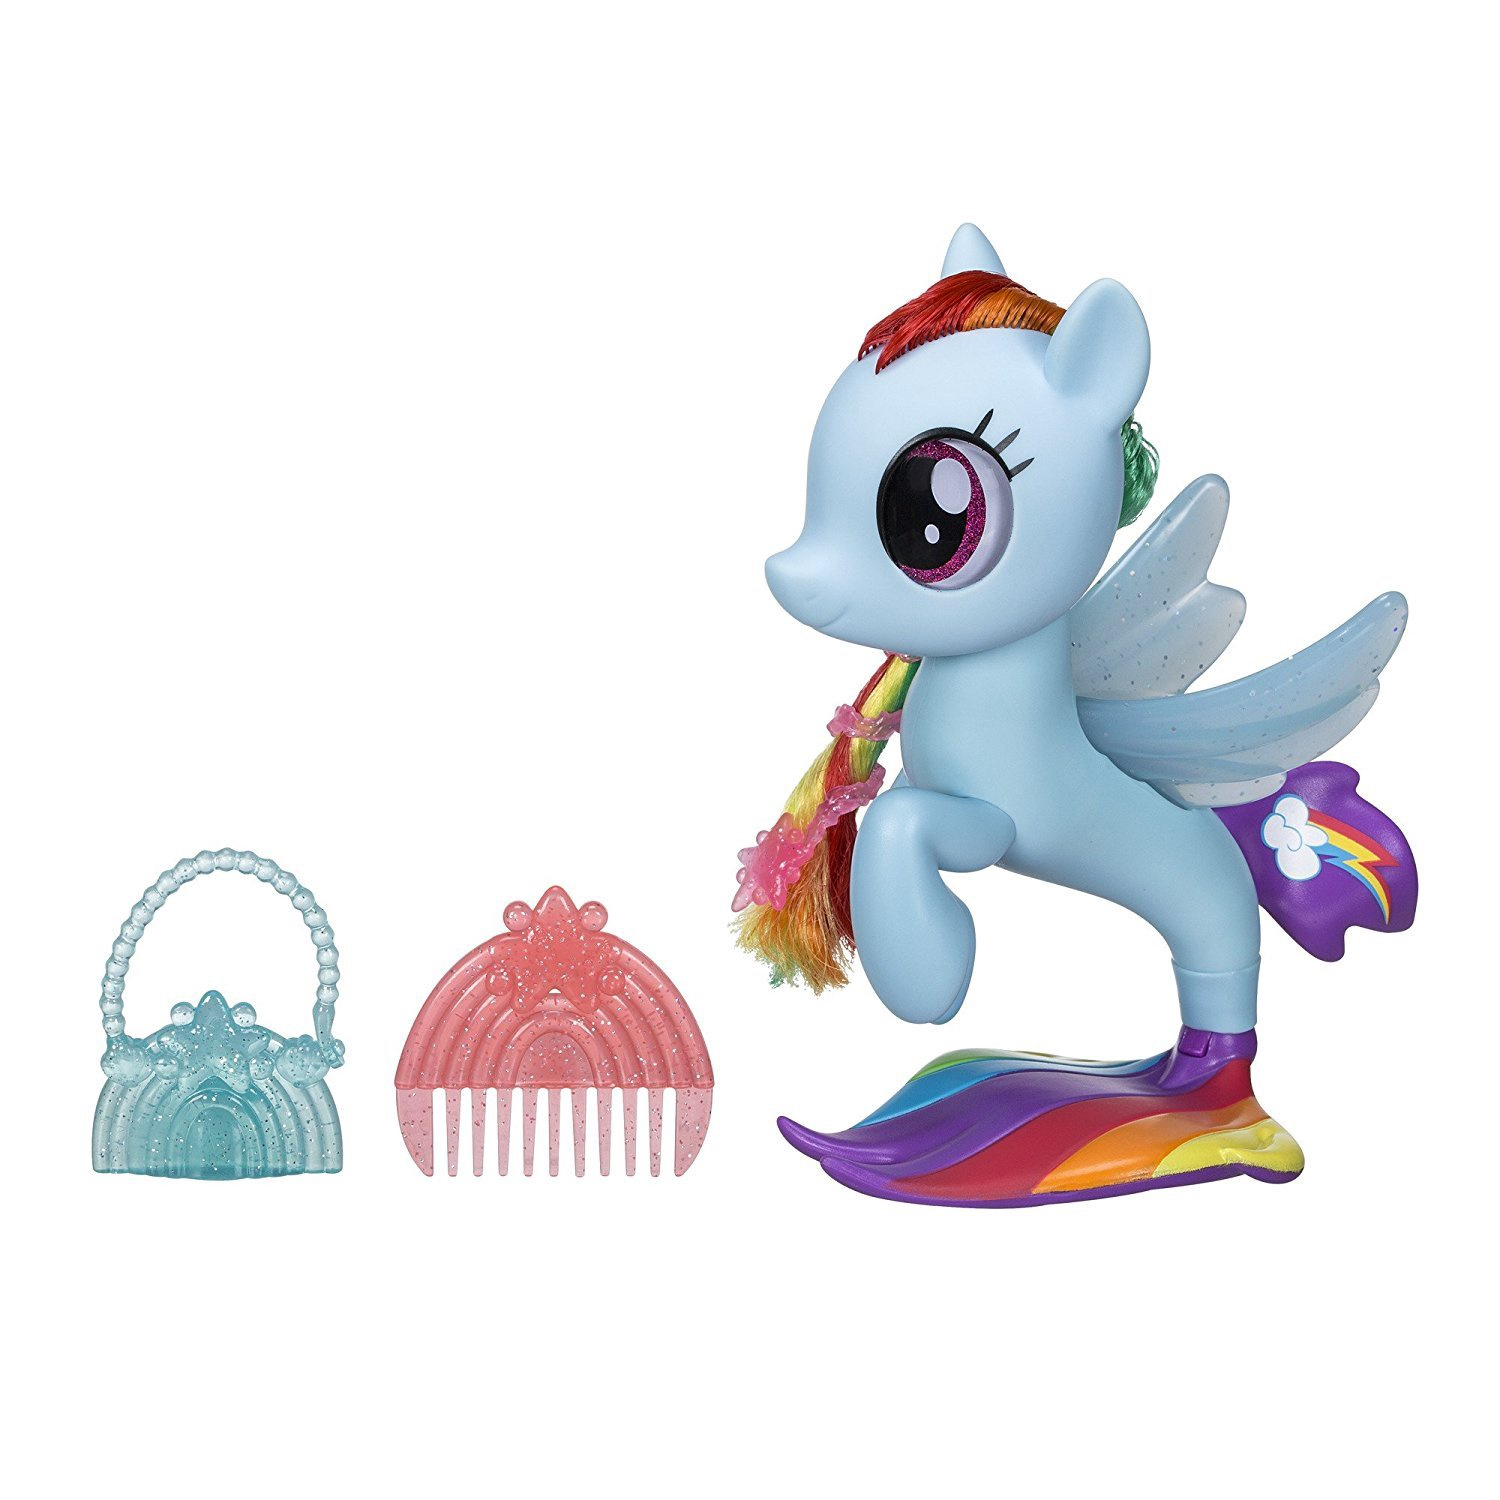 MY LITTLE PONY THE MOVIE GLITTER & STYLE SEAPONY RAINBOW DASH